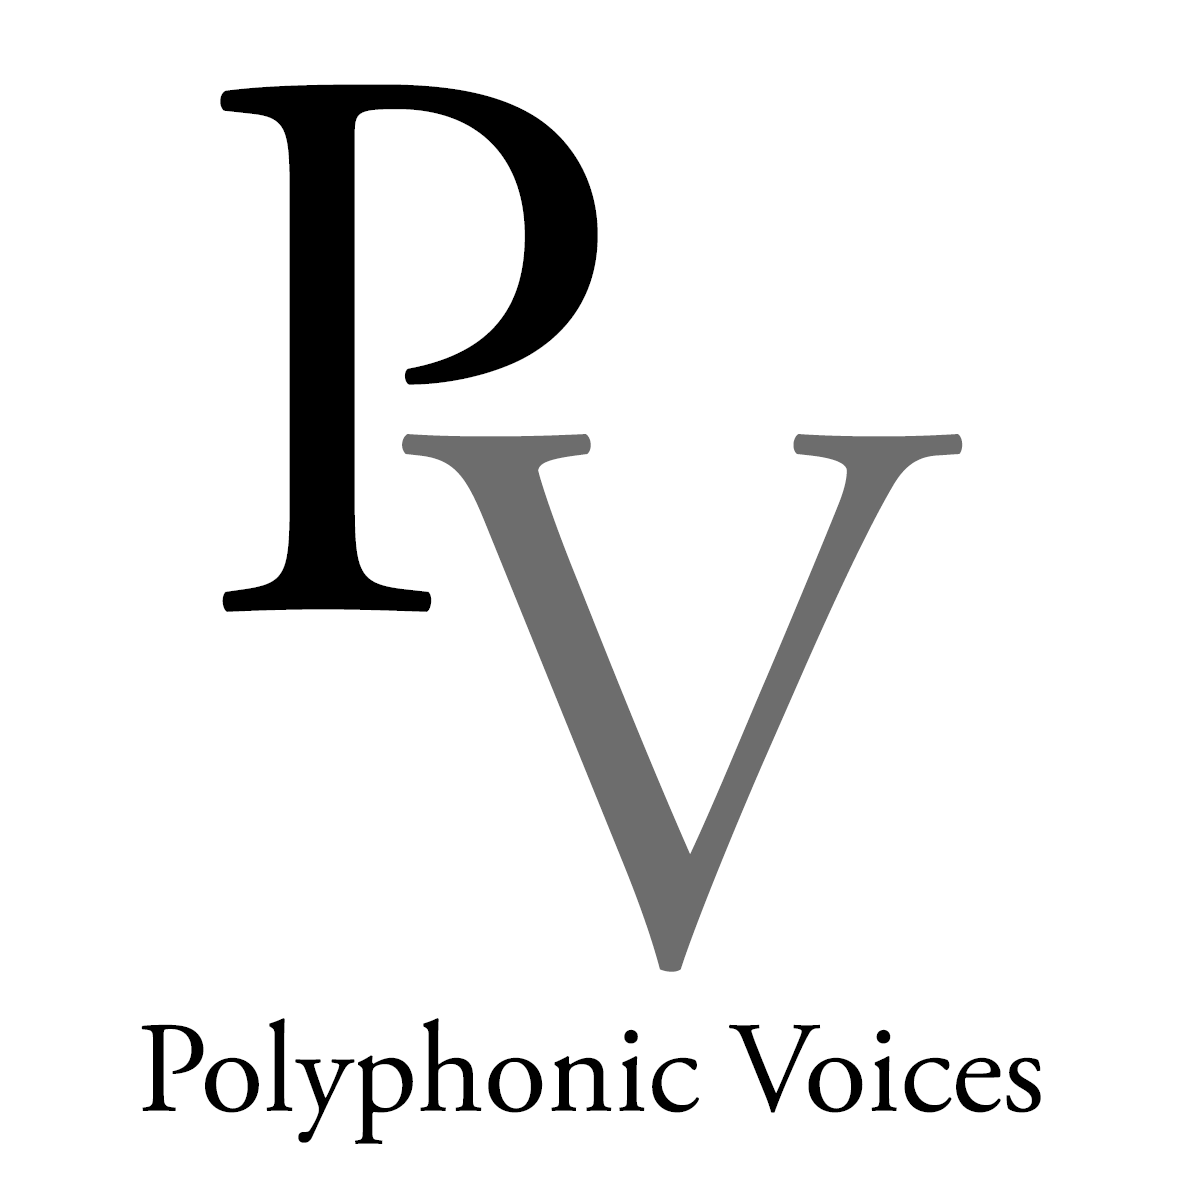 Polyphonic Voices